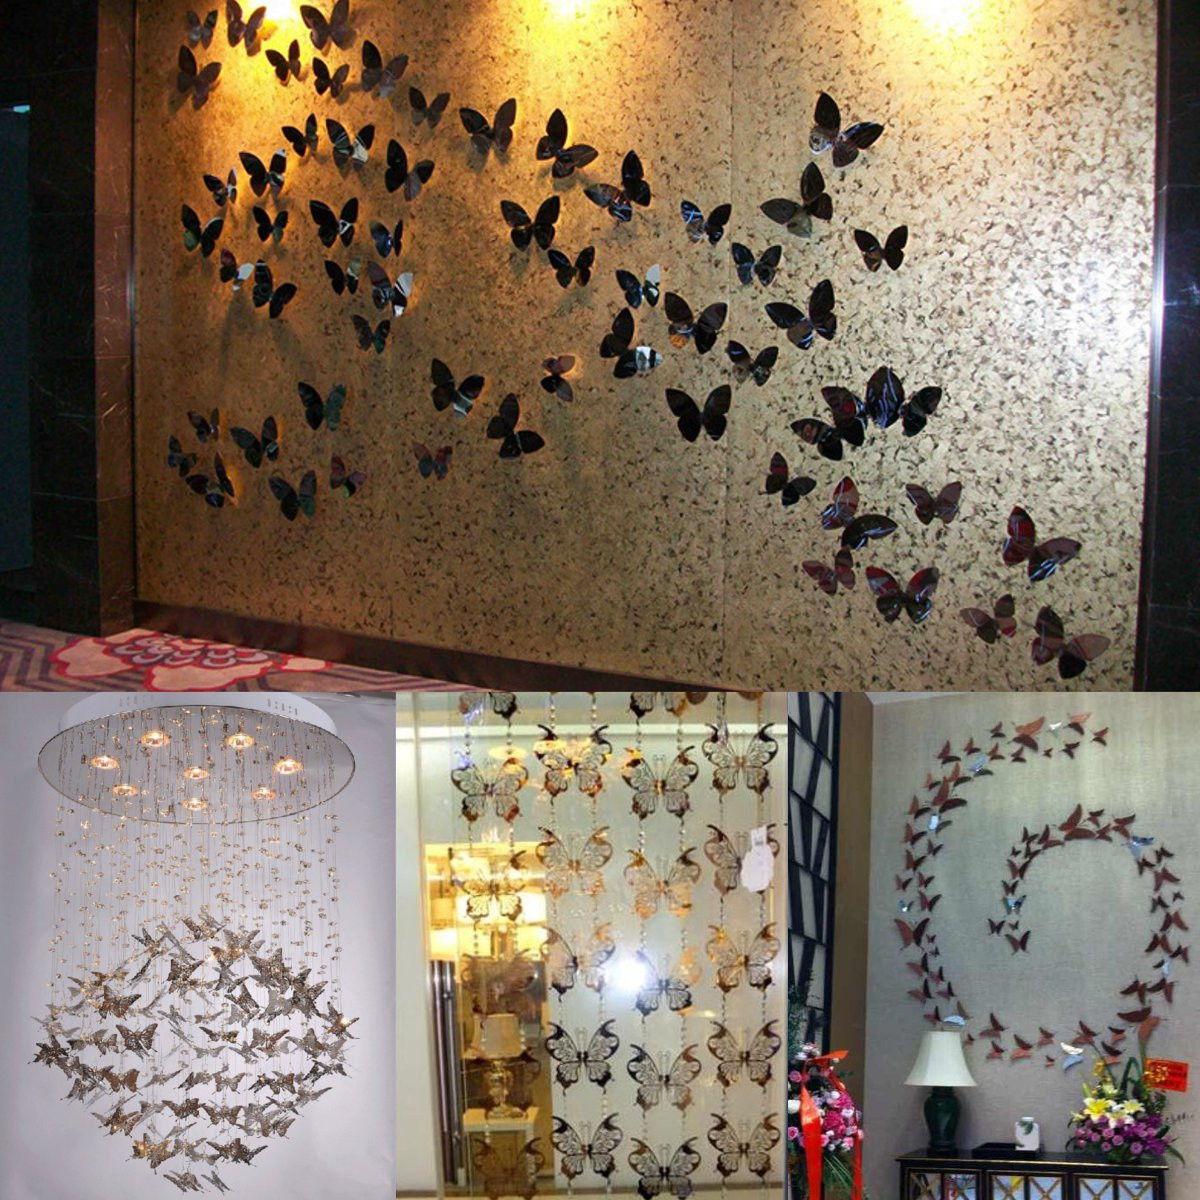 Butterfly Home Decor: 10pcs 3D Stainless Butterfly Wall Stickers Silver Mirror